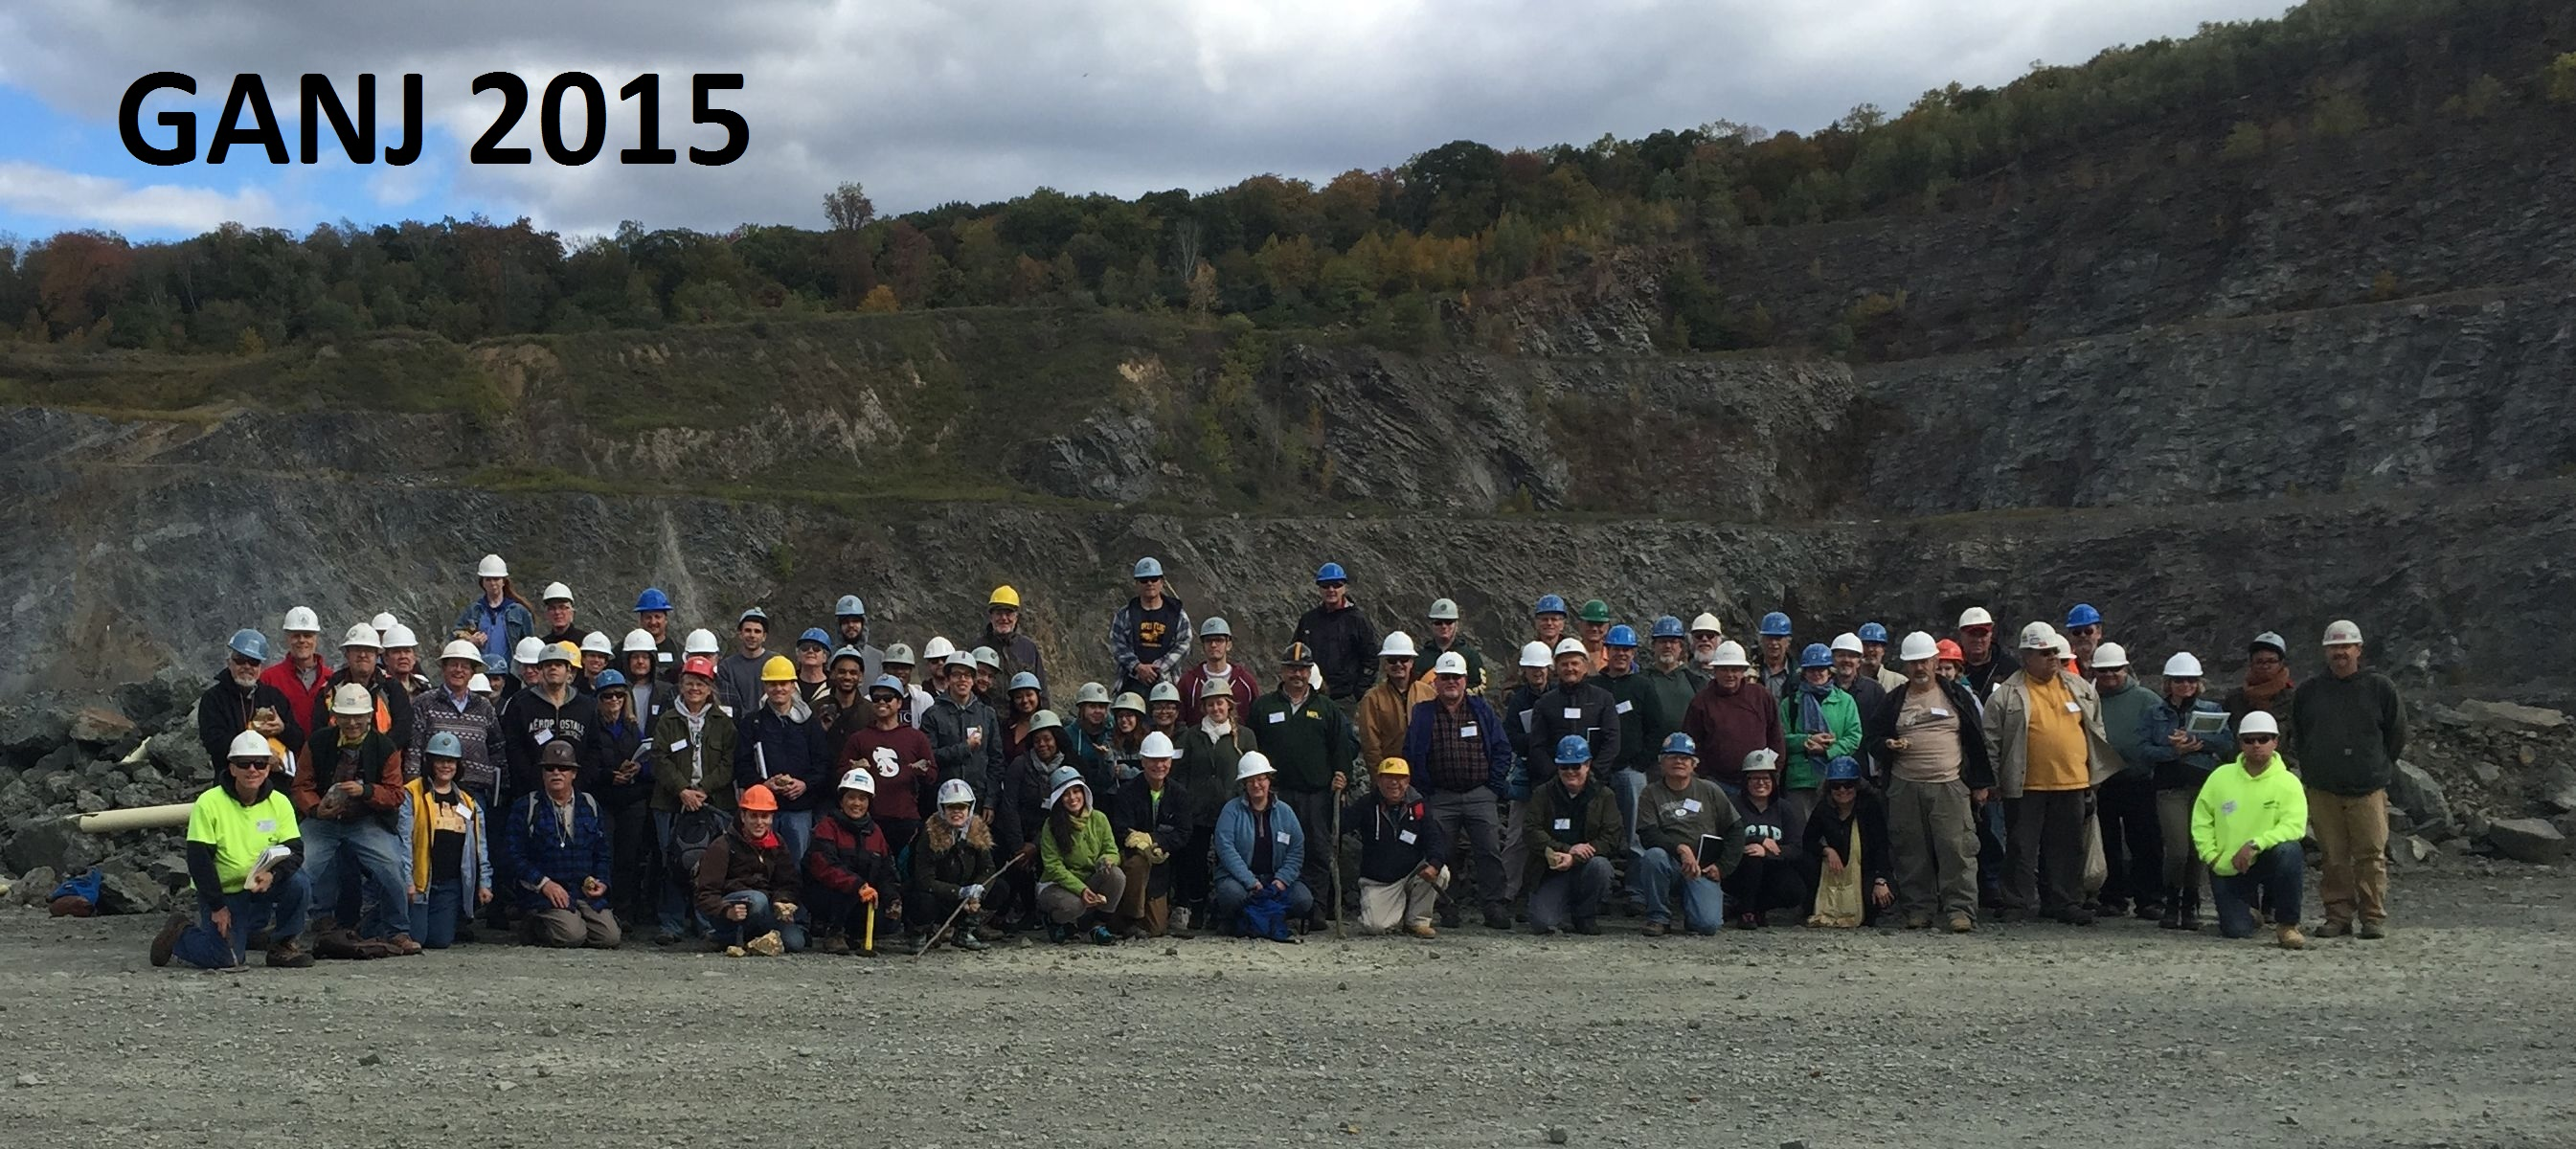 Geological Association of NJ 2015 group photo